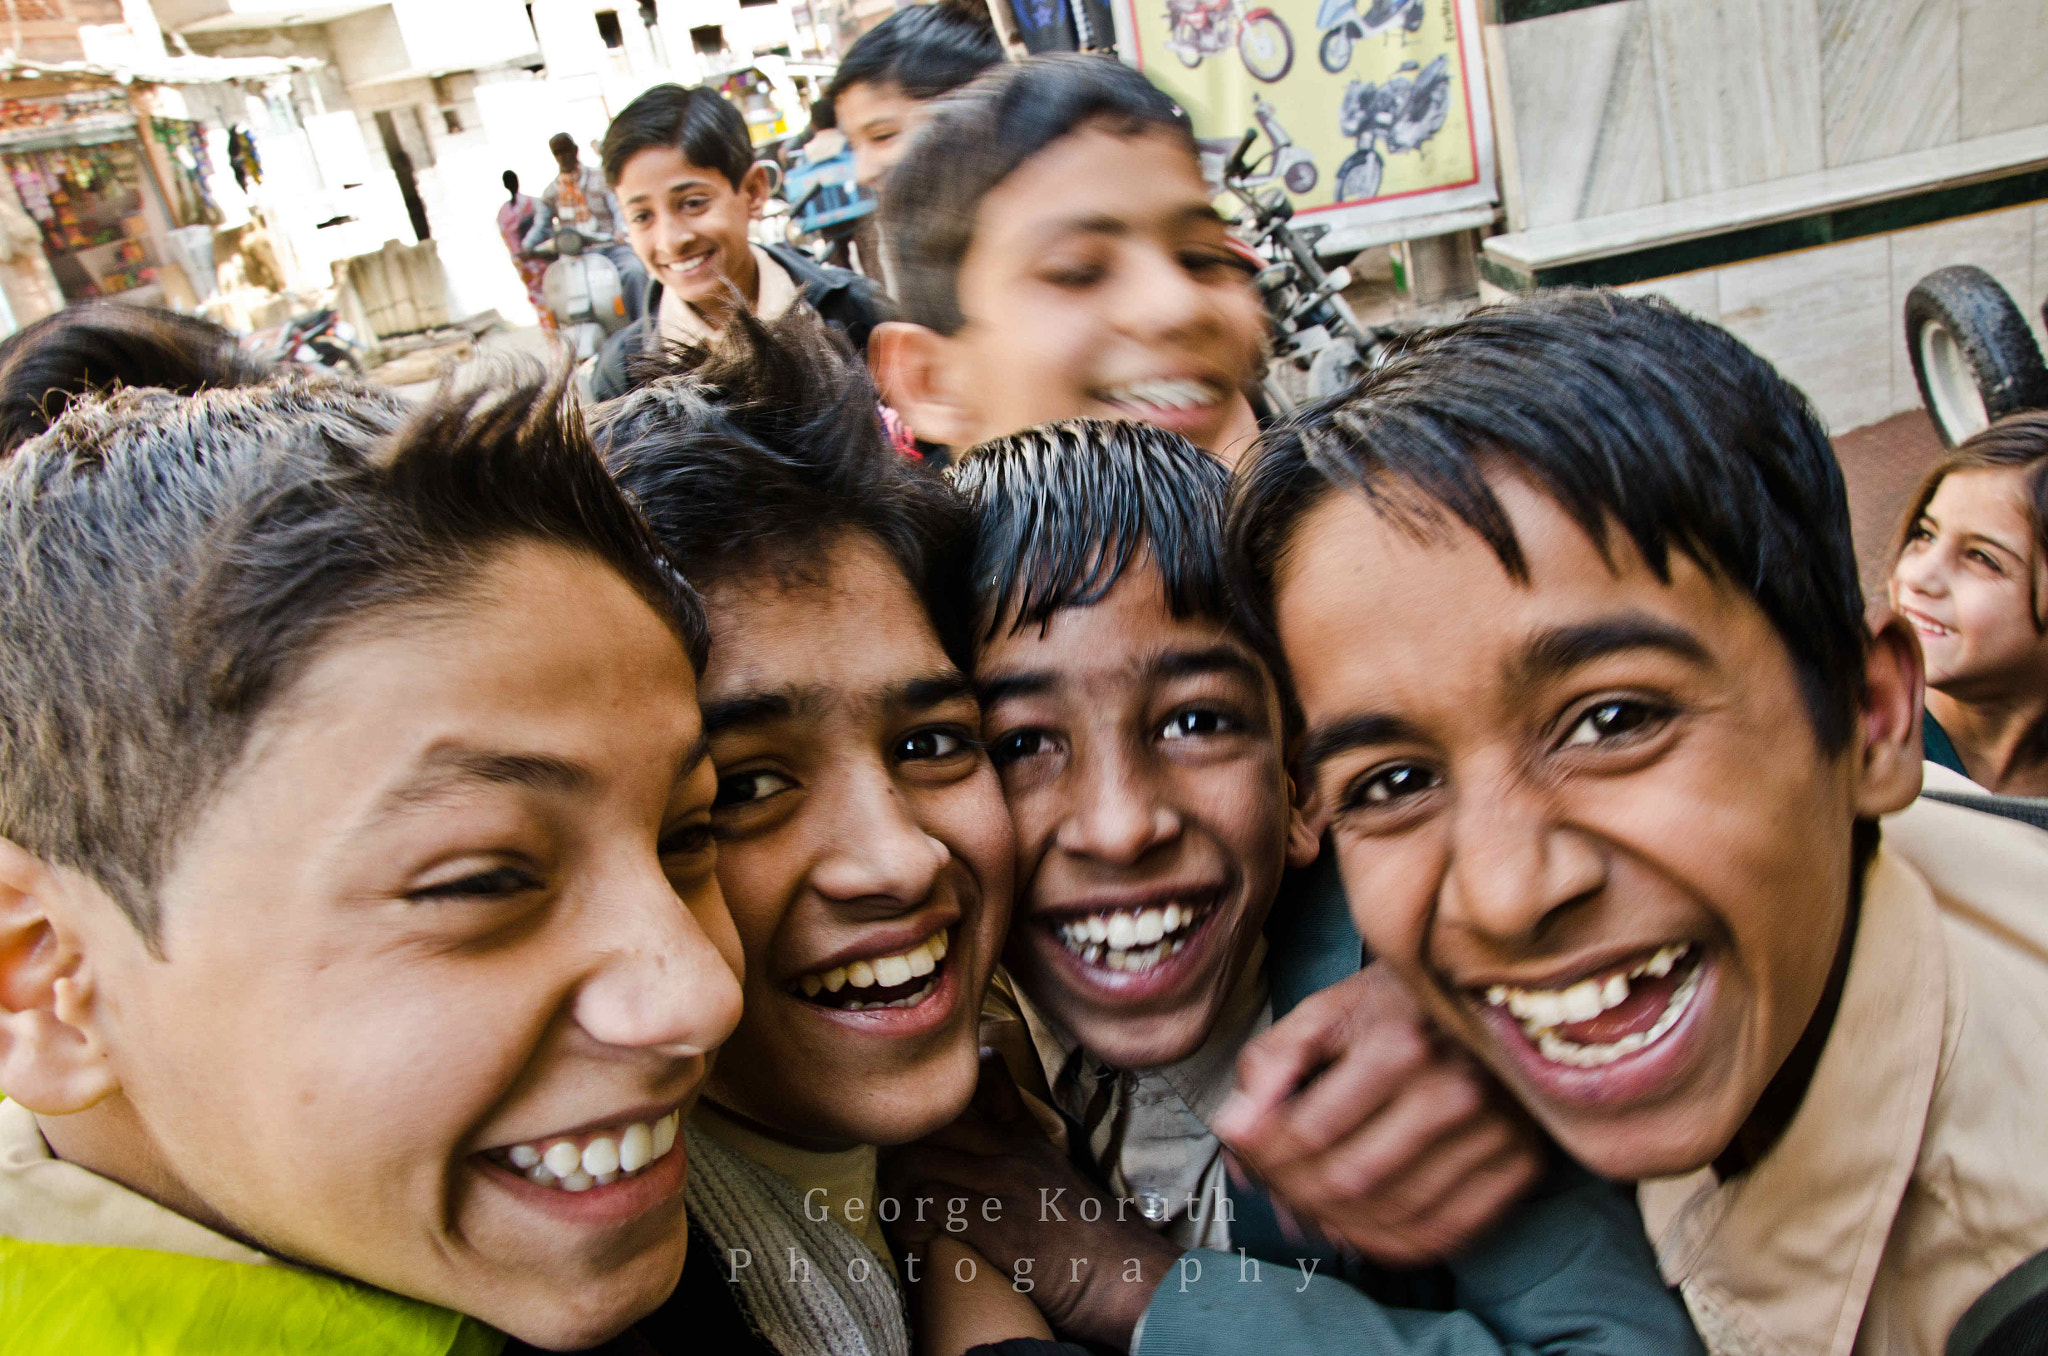 Photograph Carefree smiles by George Koruth - fotobaba on 500px